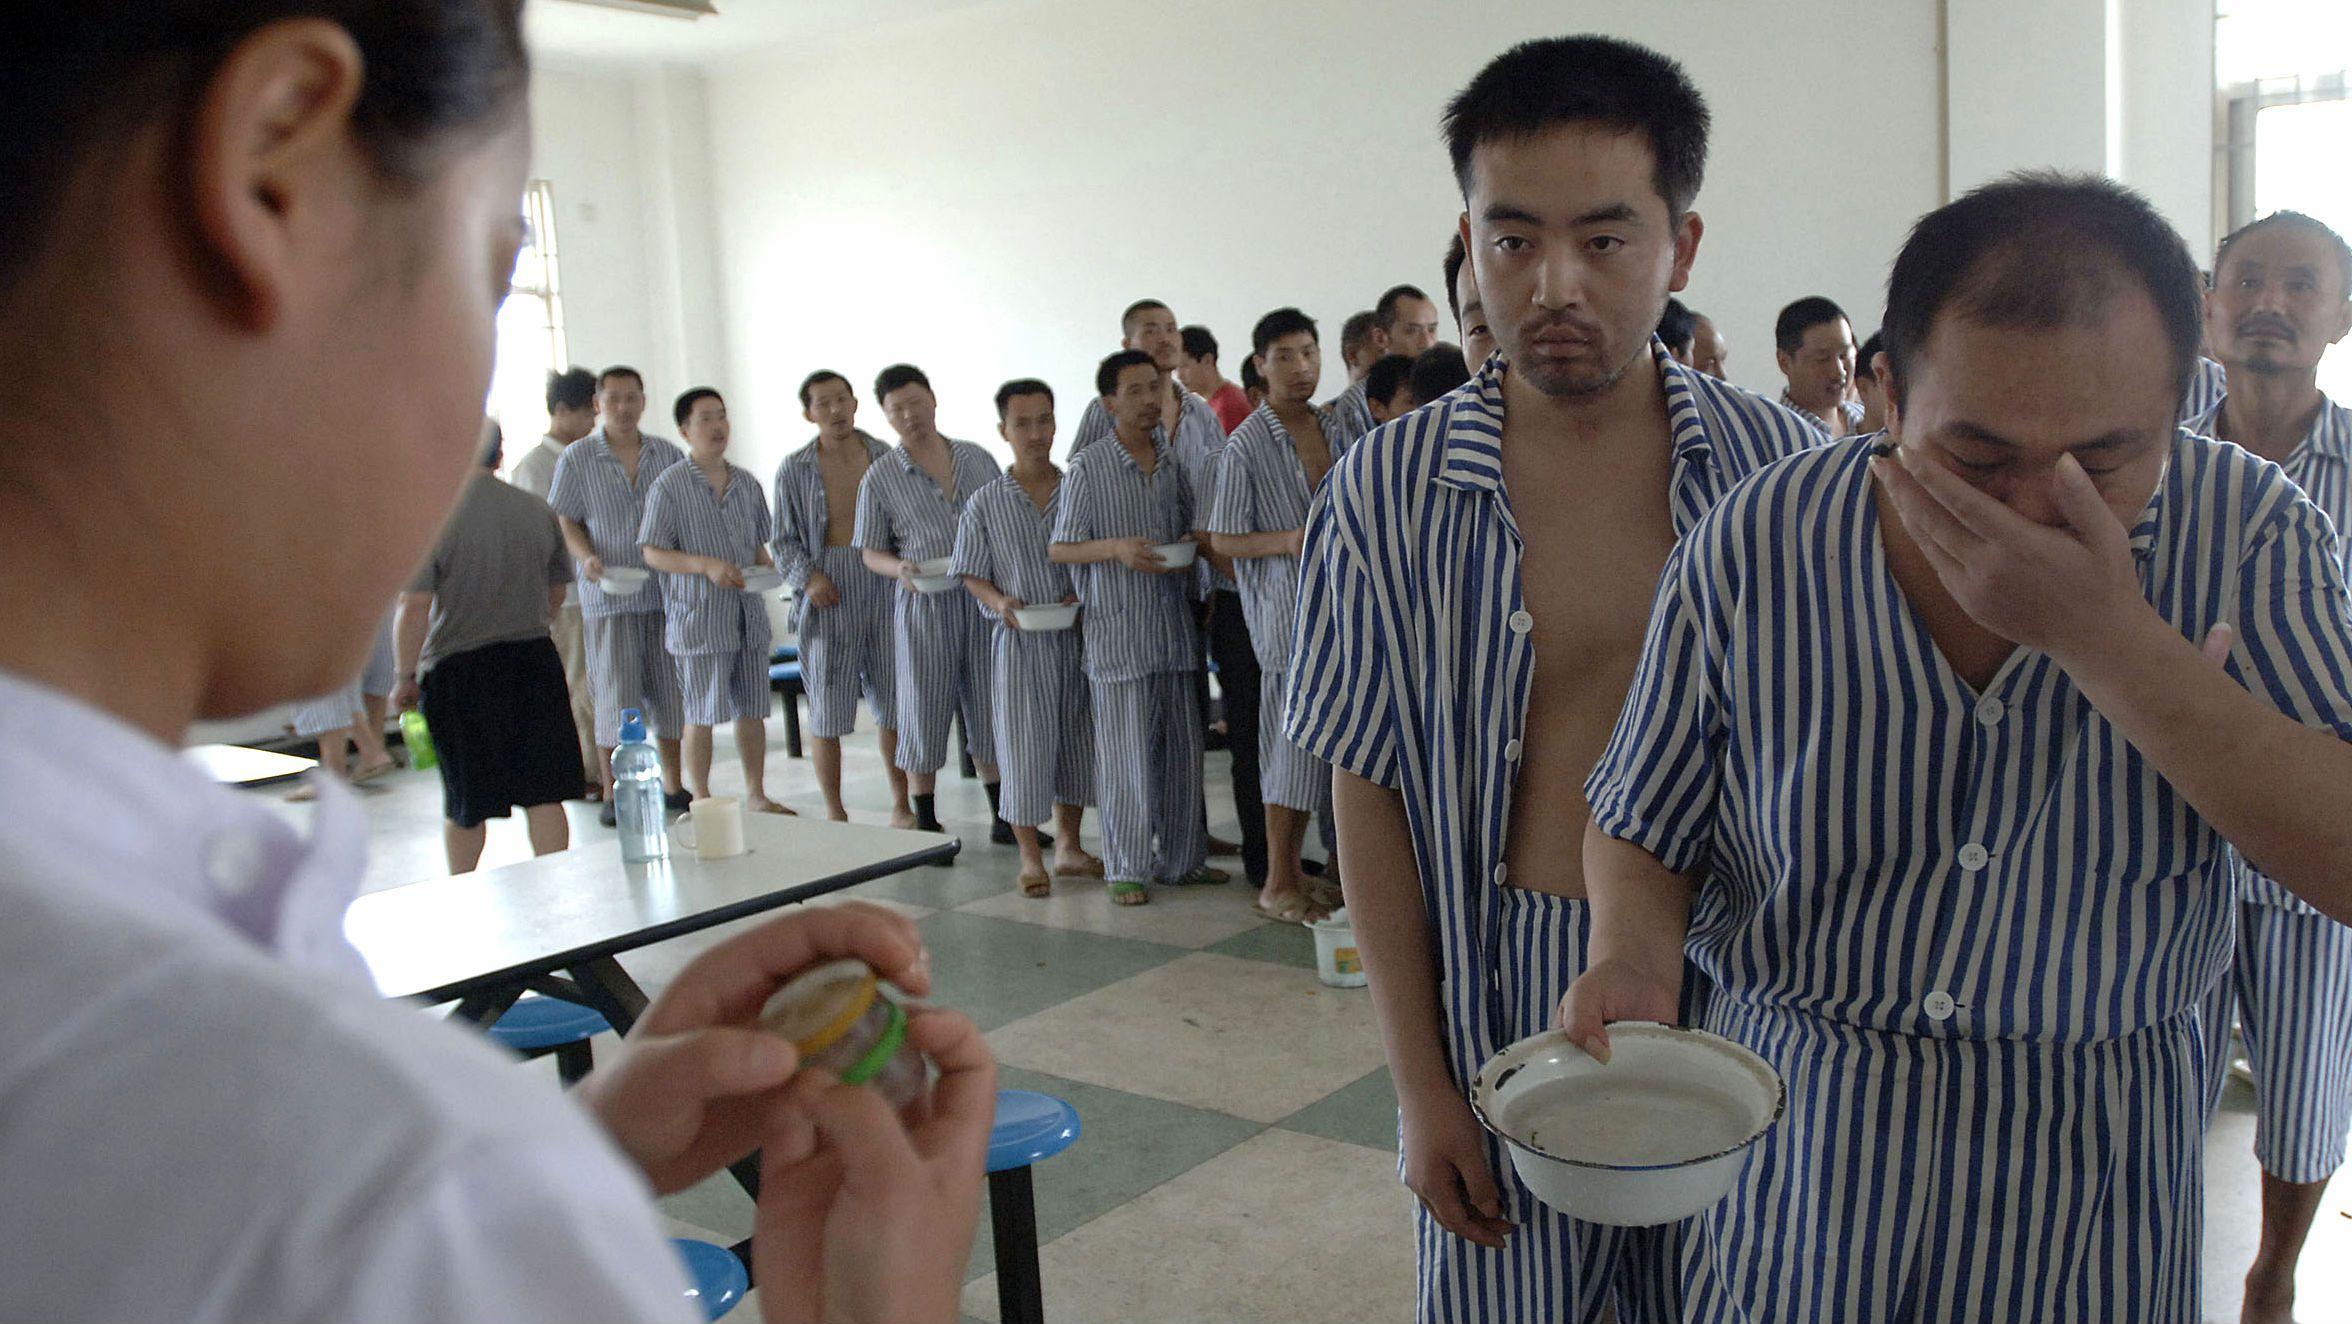 Inmates line up to take medicine in the presence of nurses at a hospital which houses and provides treatment to about 100 patients who are suffering from mental disorders, in Hefei, east China's Anhui province July 3, 2007. Just 10 percent of the 30 million Chinese currently suffering from depression are getting proper medical care due to a lack of psychiatrists and social prejudice against mental illness, experts have said, China Daily reported. REUTERS/Jianan Yu (CHINA)